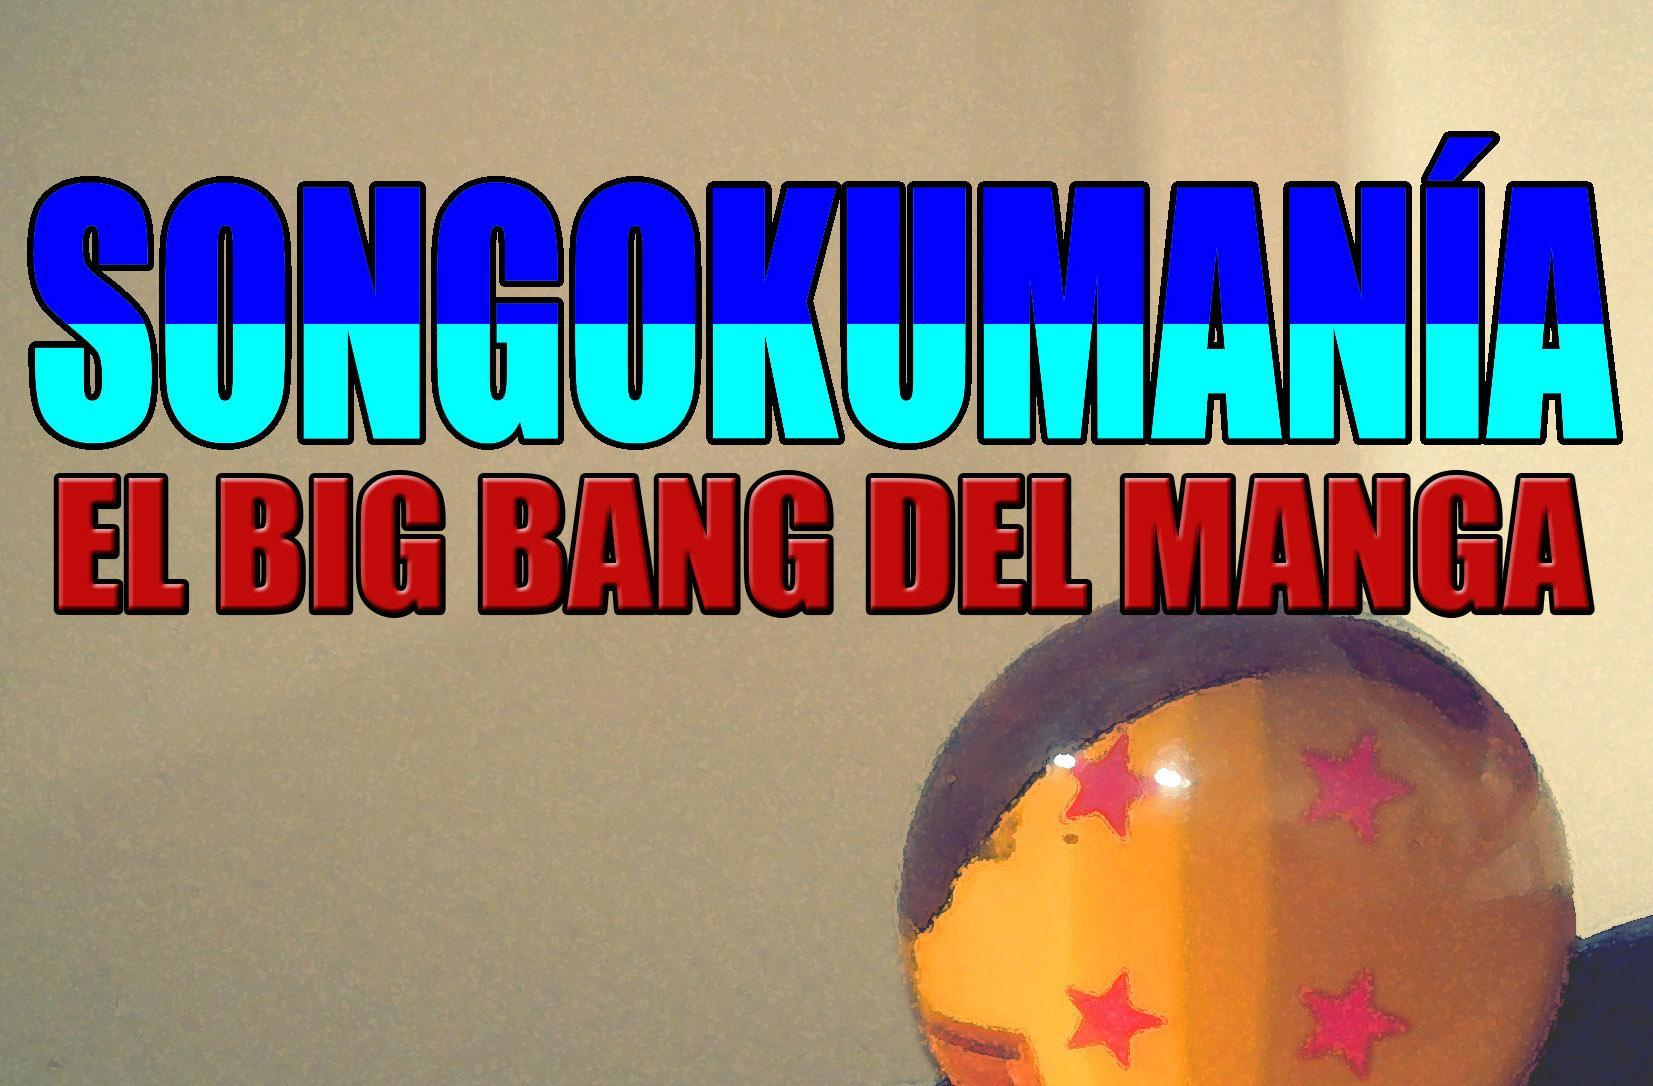 Image result for songokumania el big bang